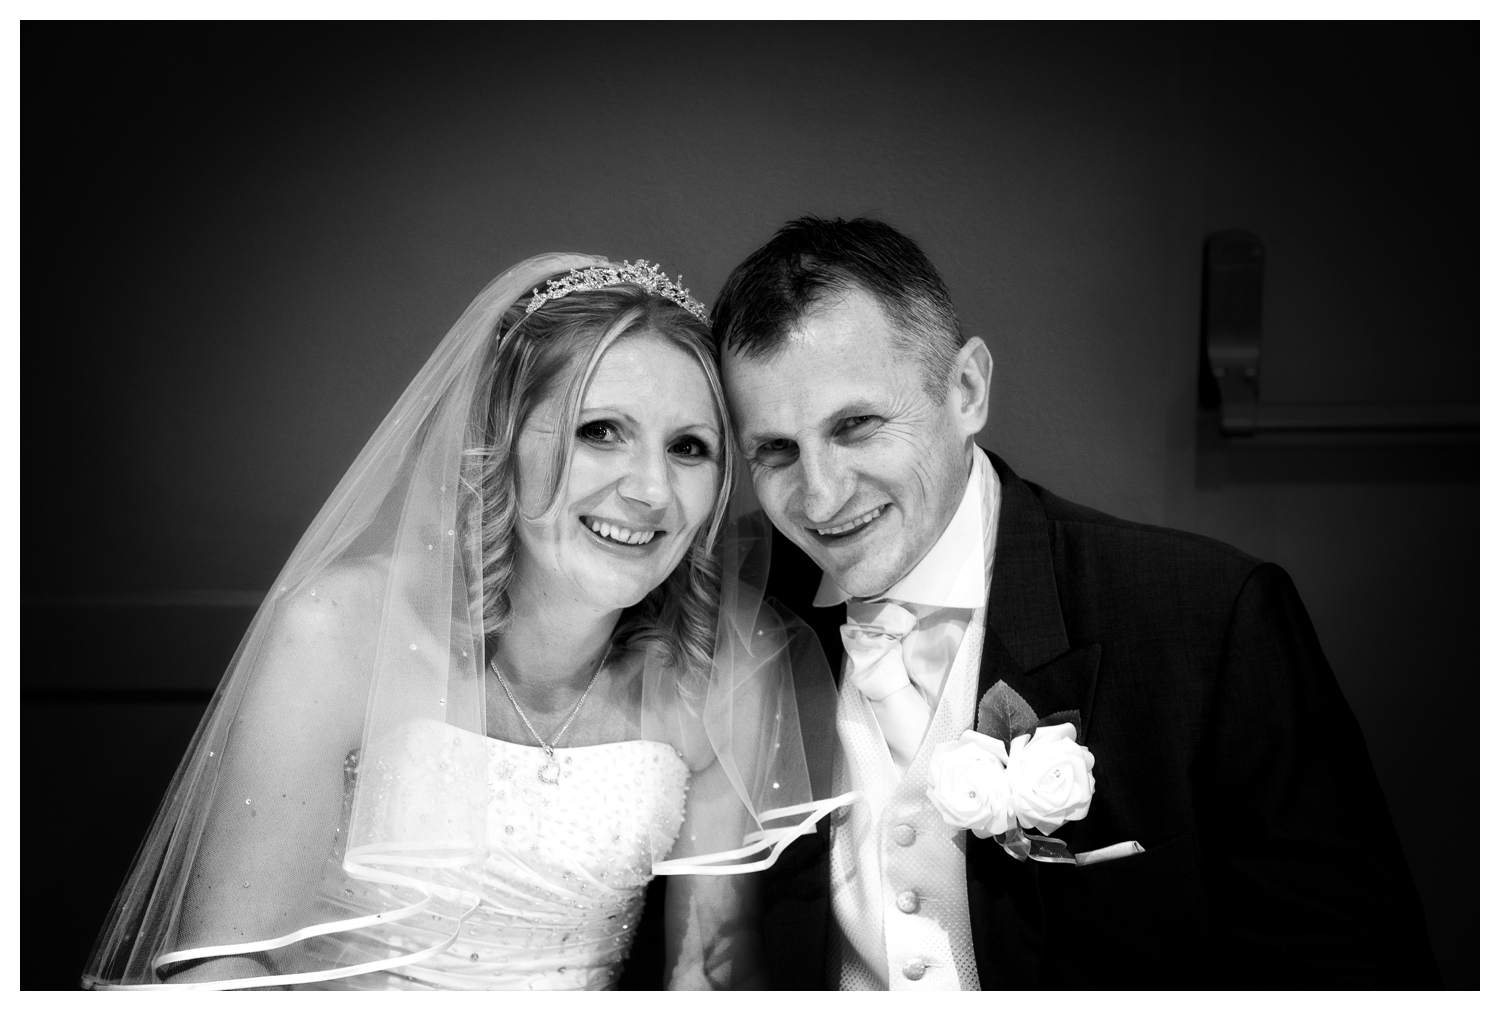 Katrina & Mark's wedding at The Bull Hotel Halstead